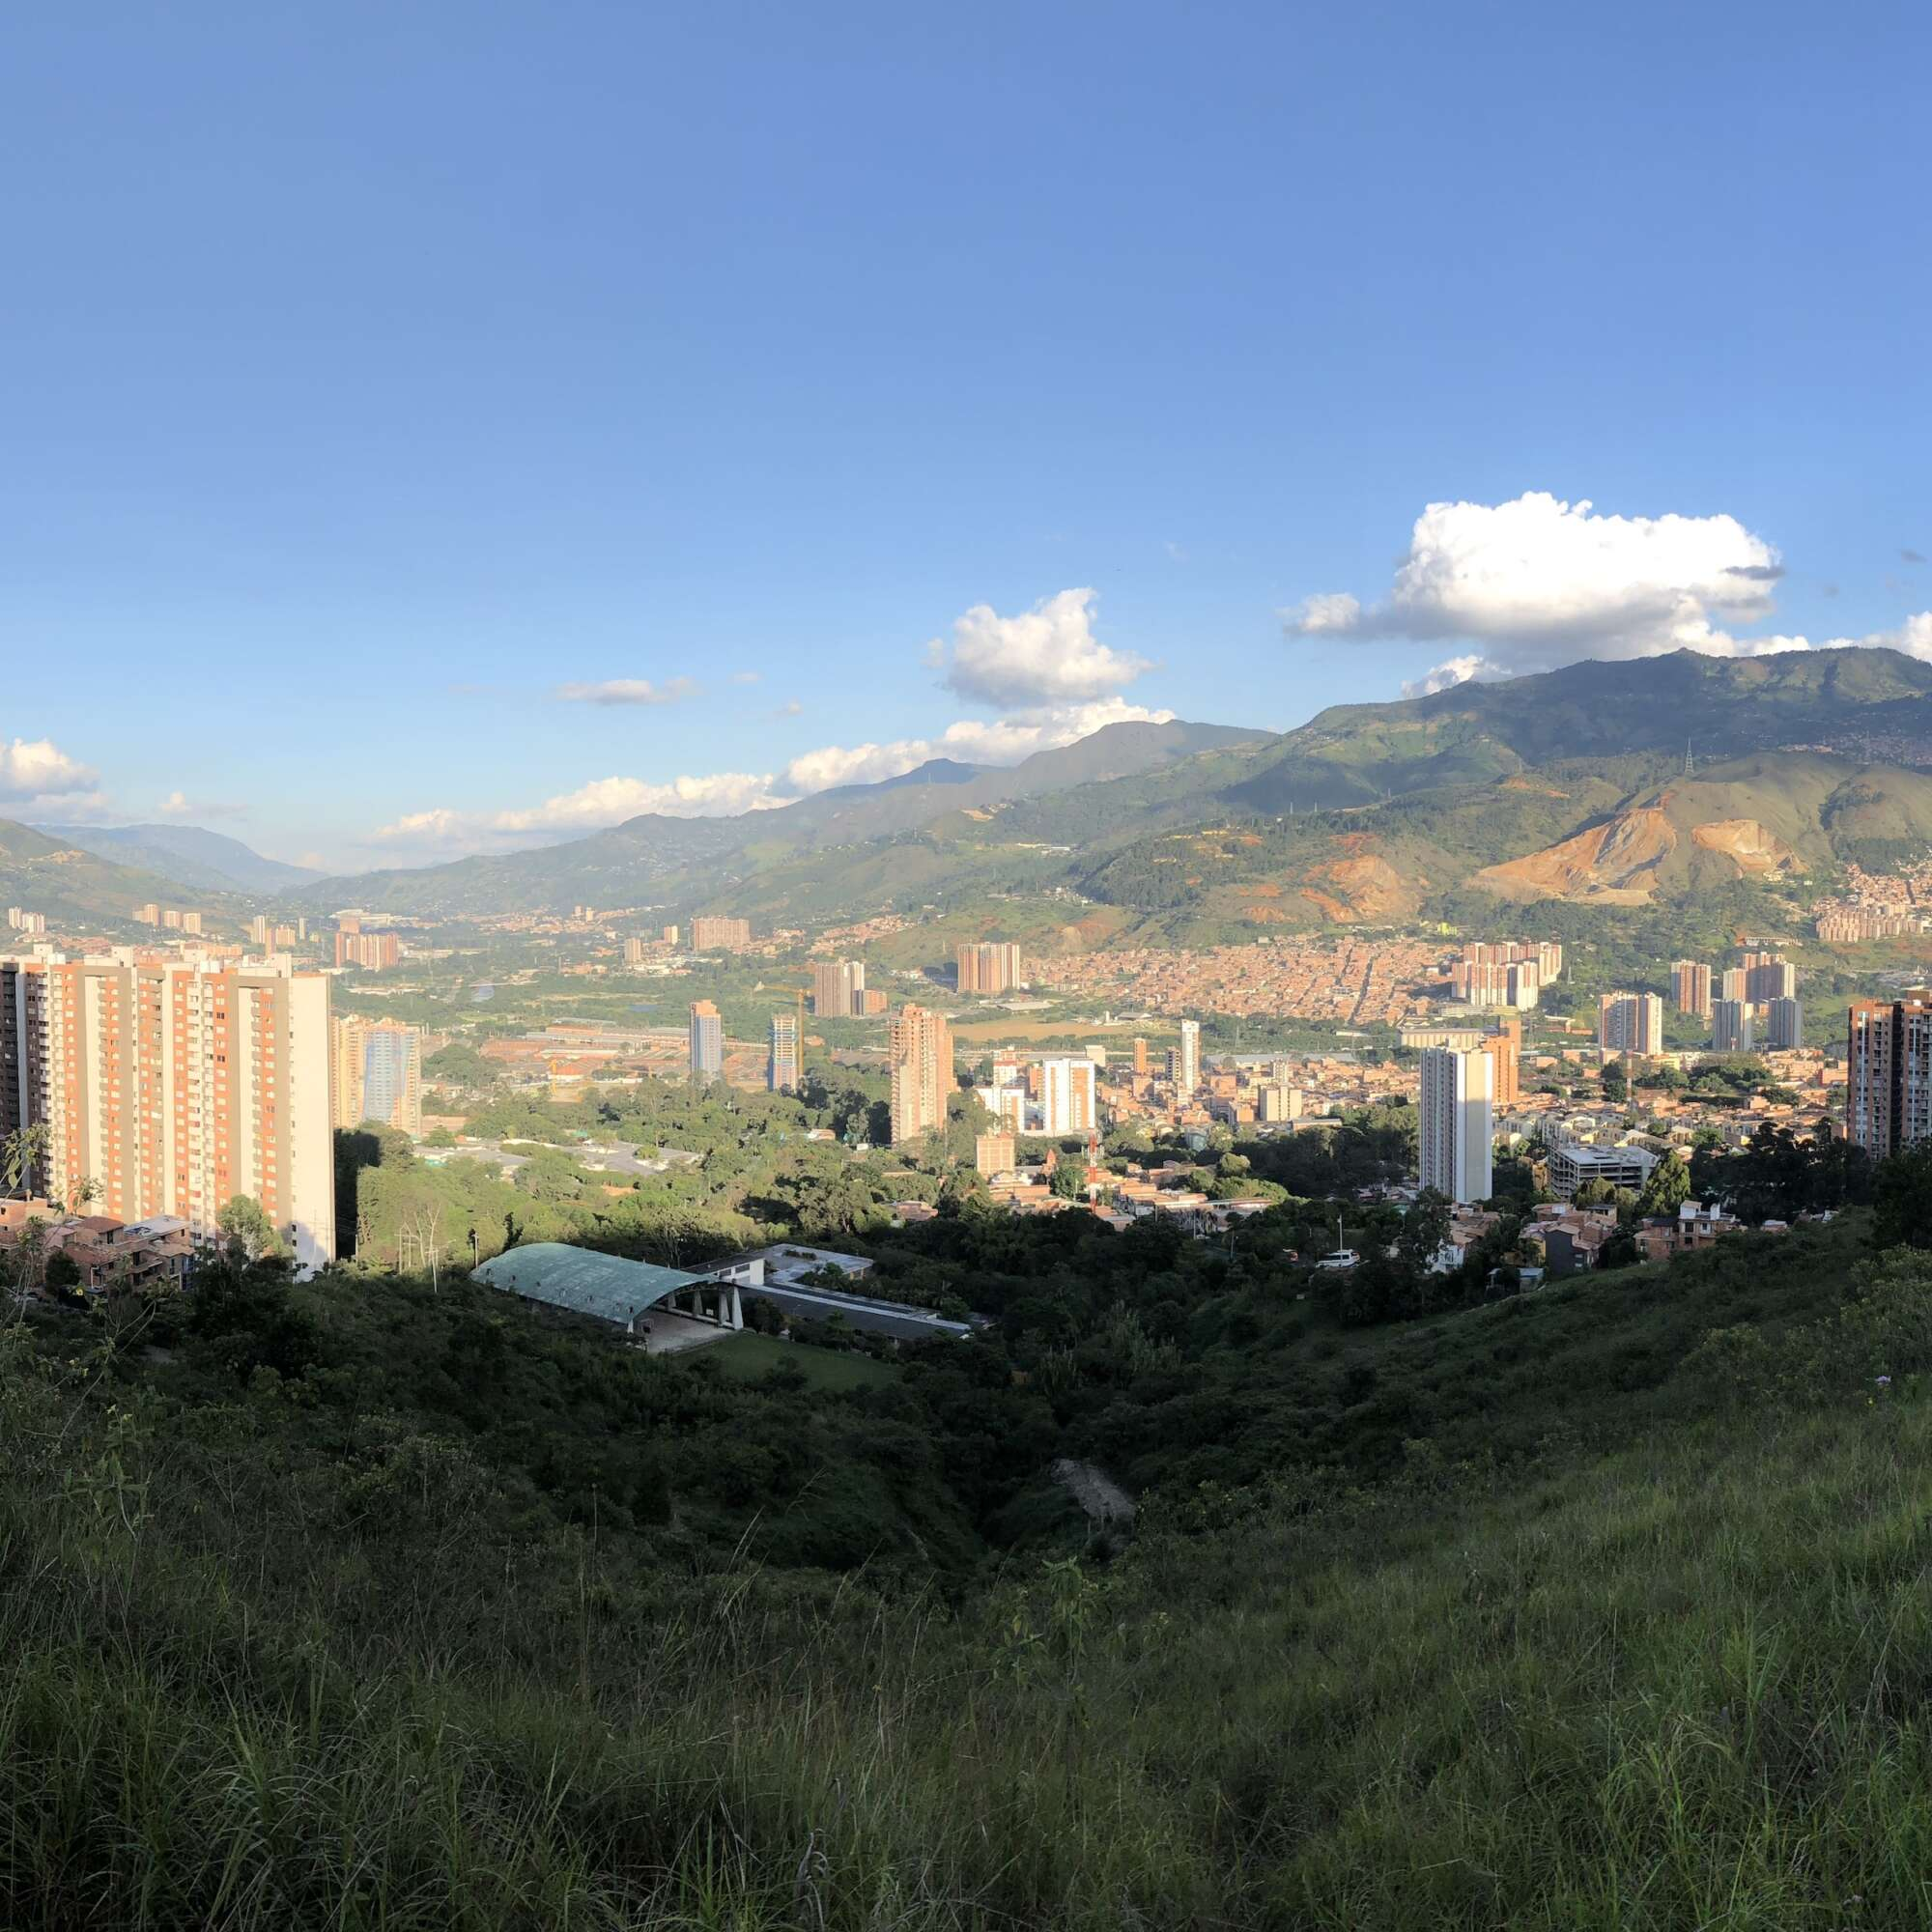 View of a green lush valley and buildings scattered throughout